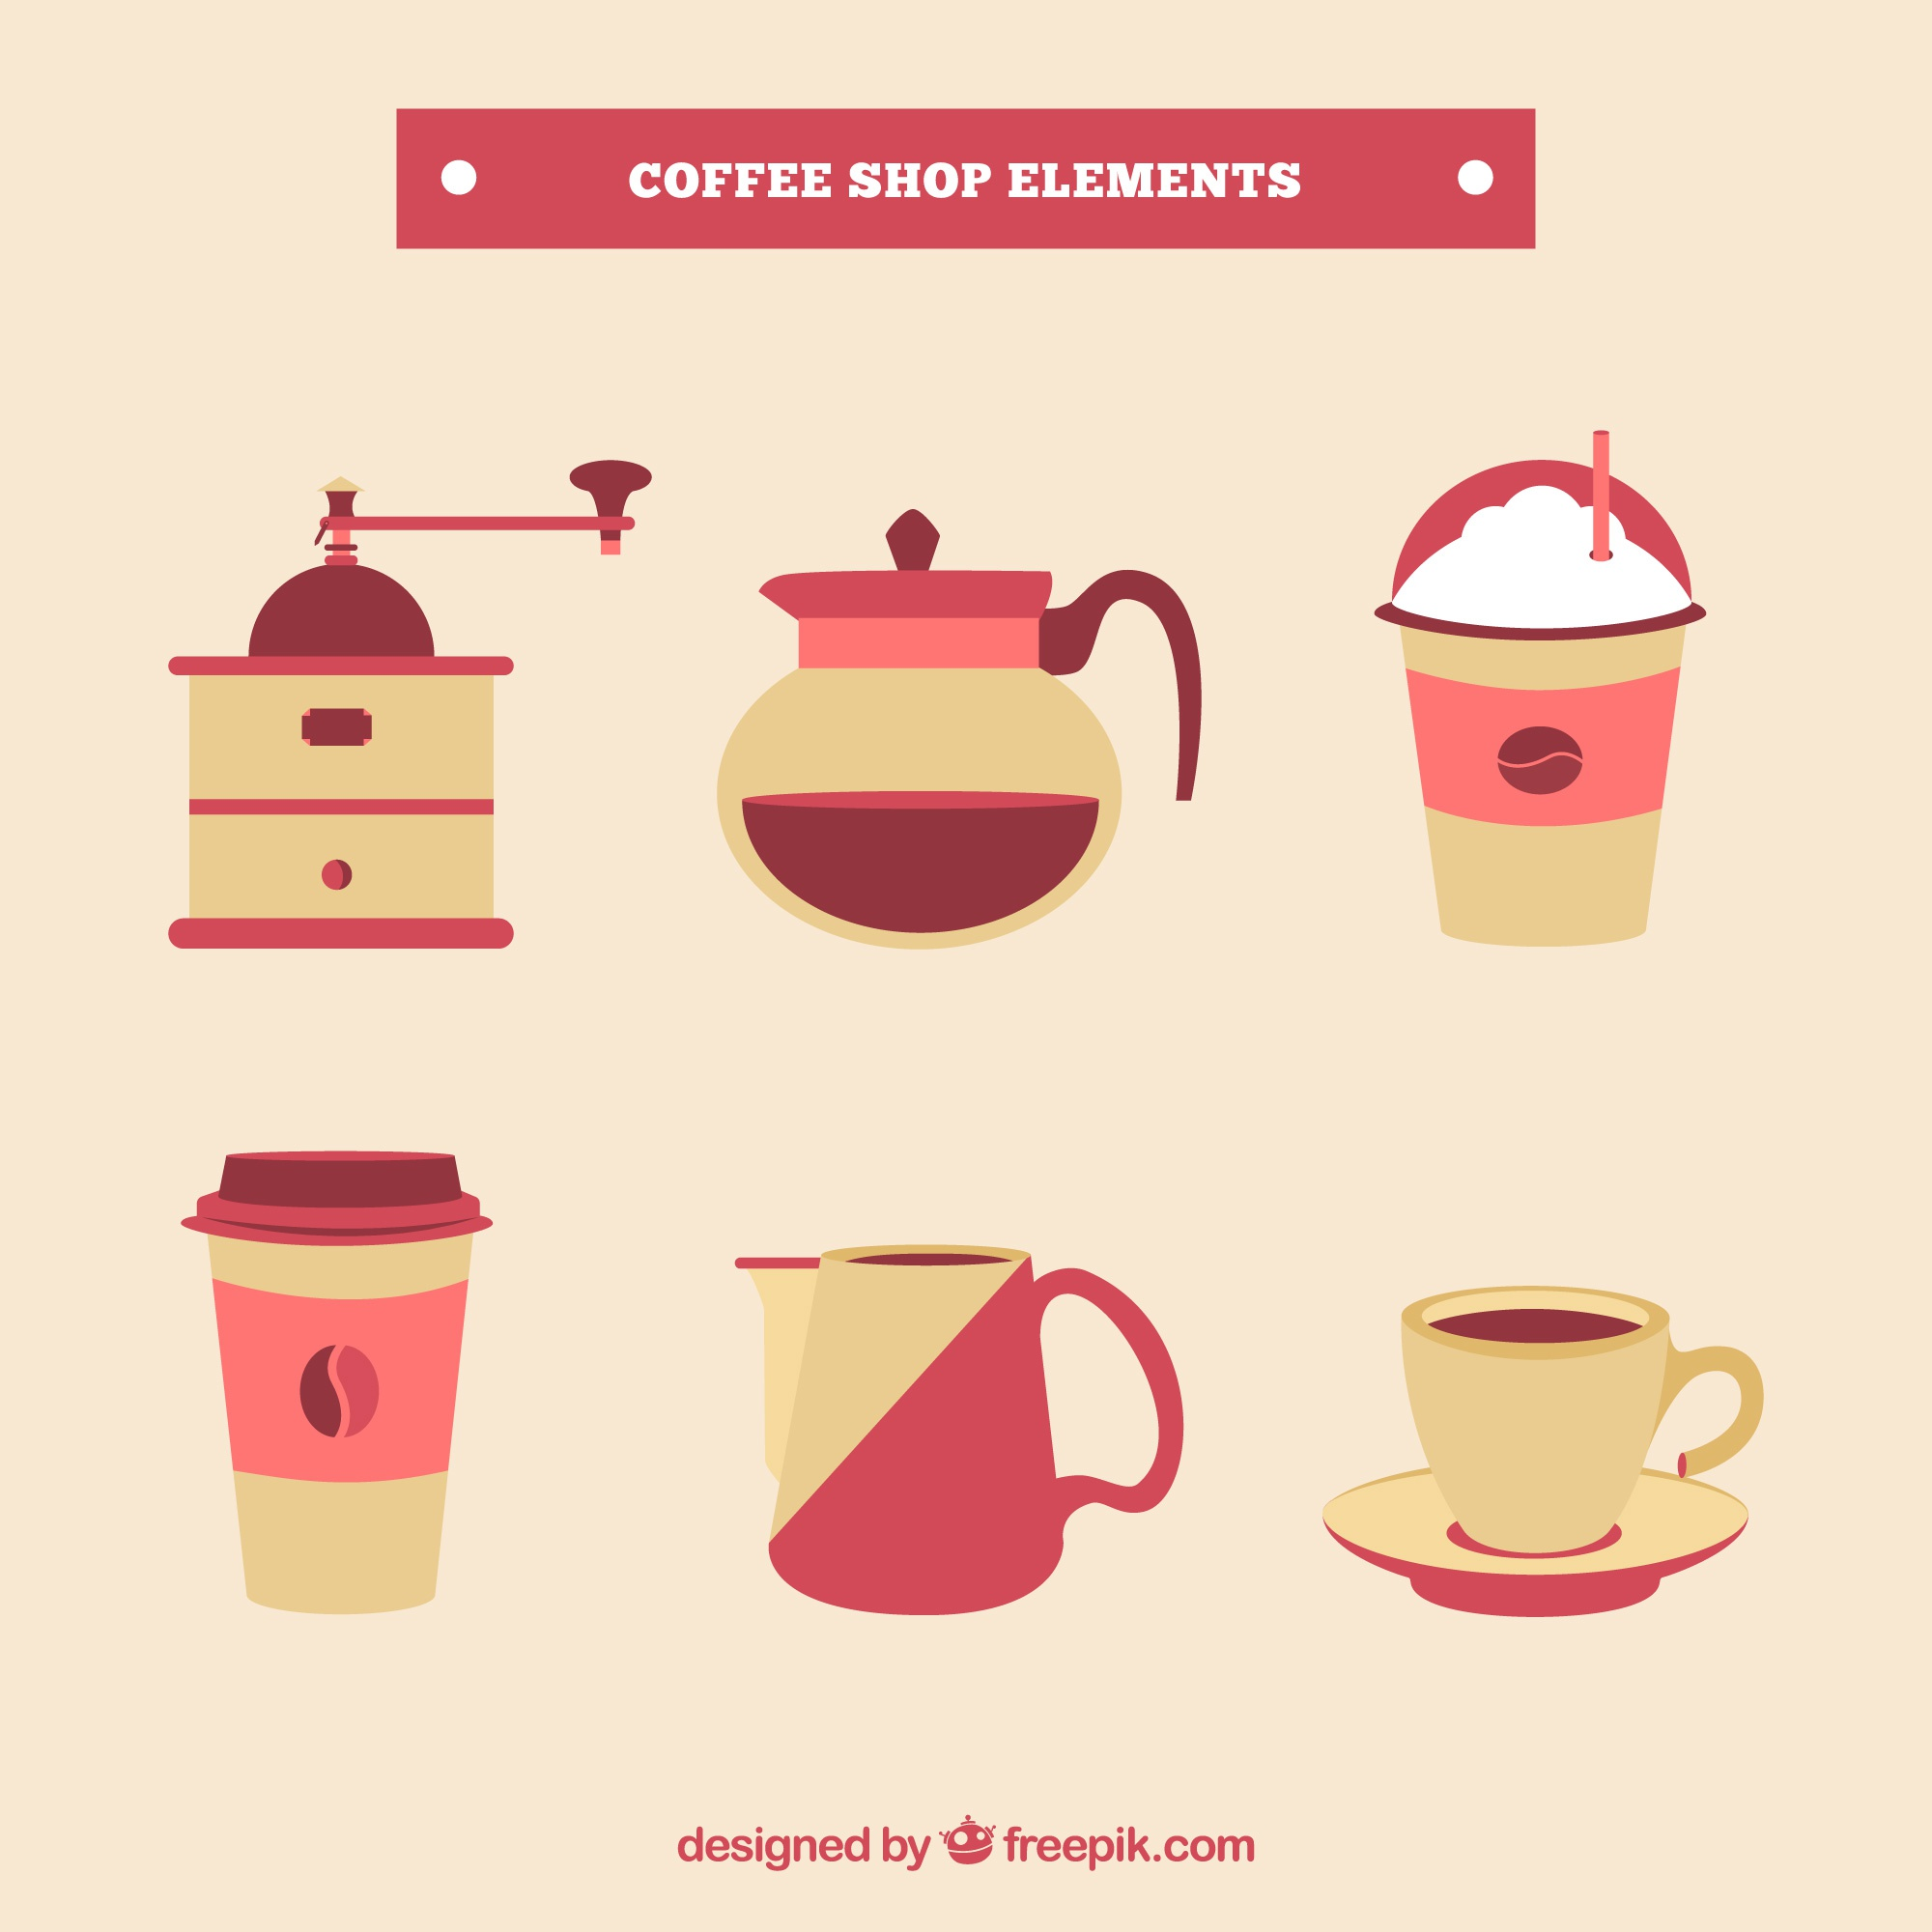 Pack of coffee elements in flat design